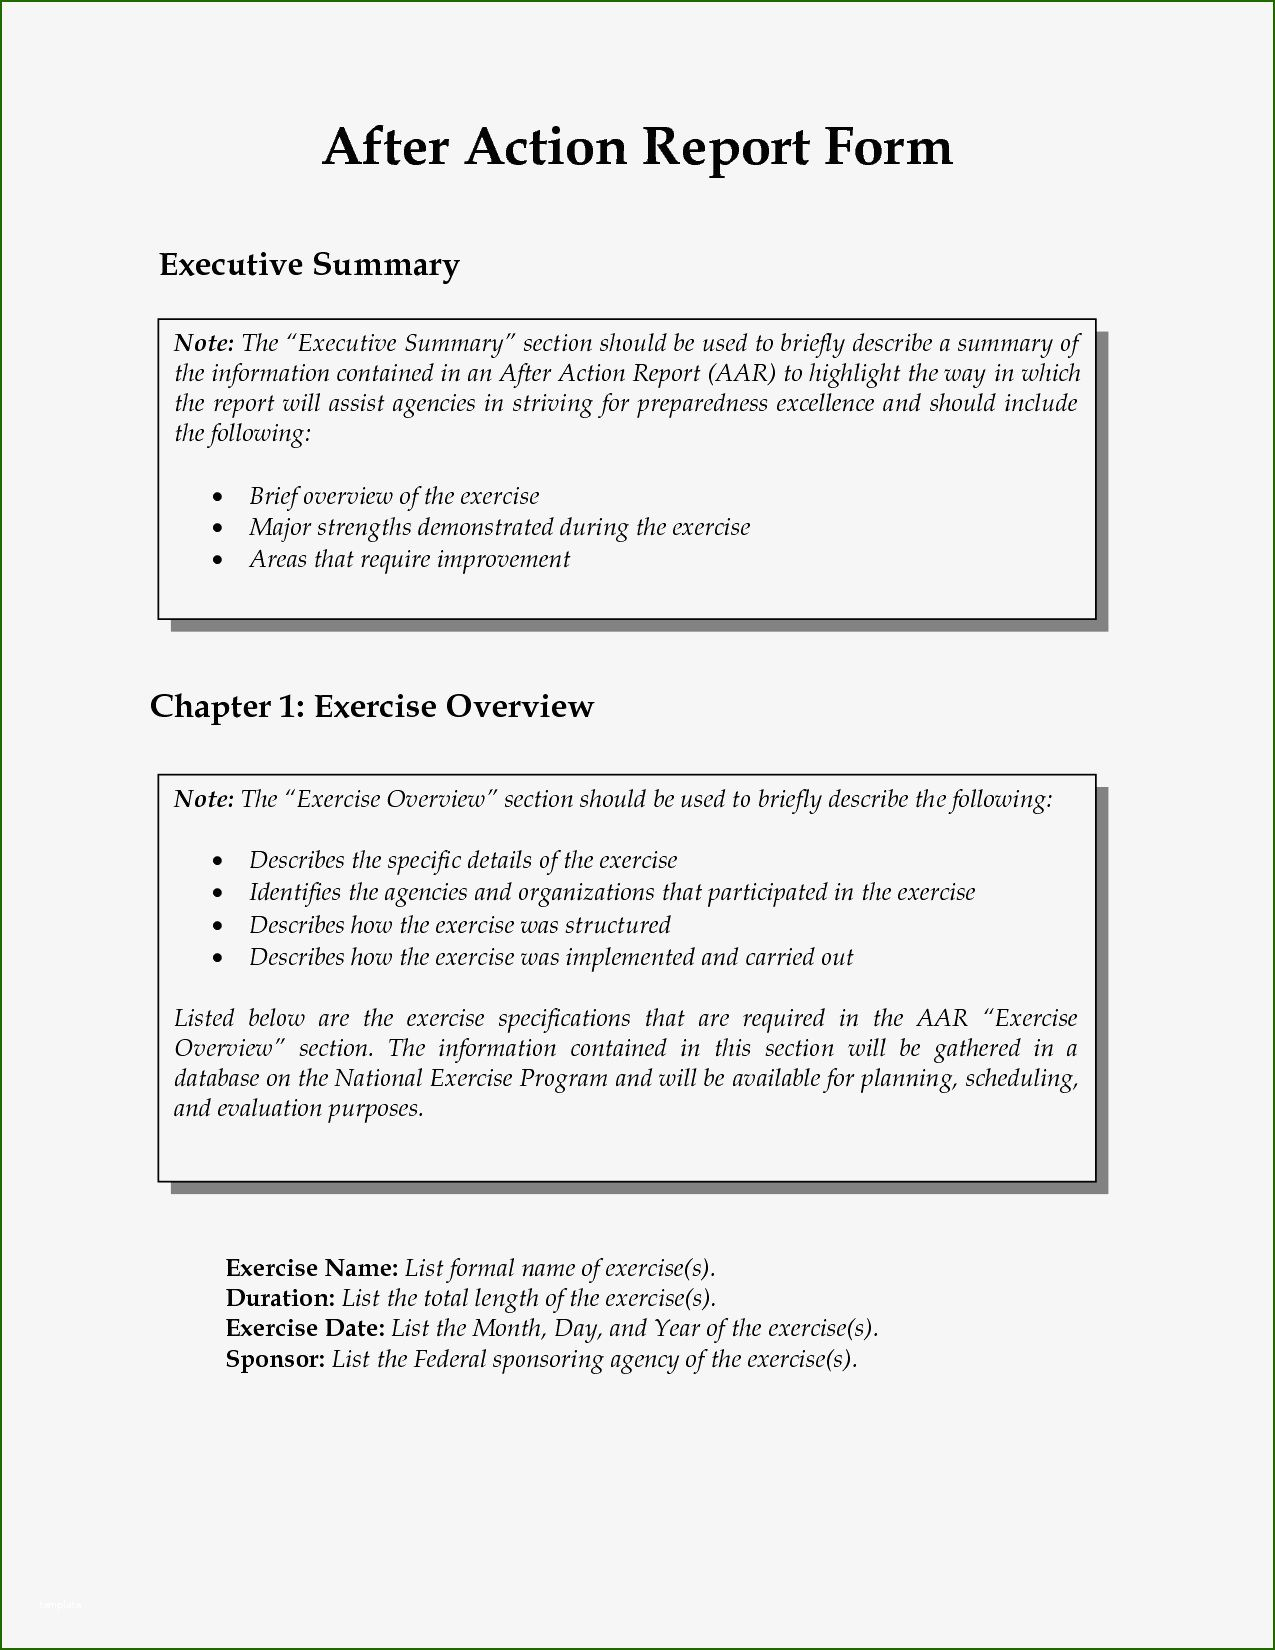 After Action Report Template 19 Scheme Of 2020 Report Template Best Templates Event Planning Checklist Templates